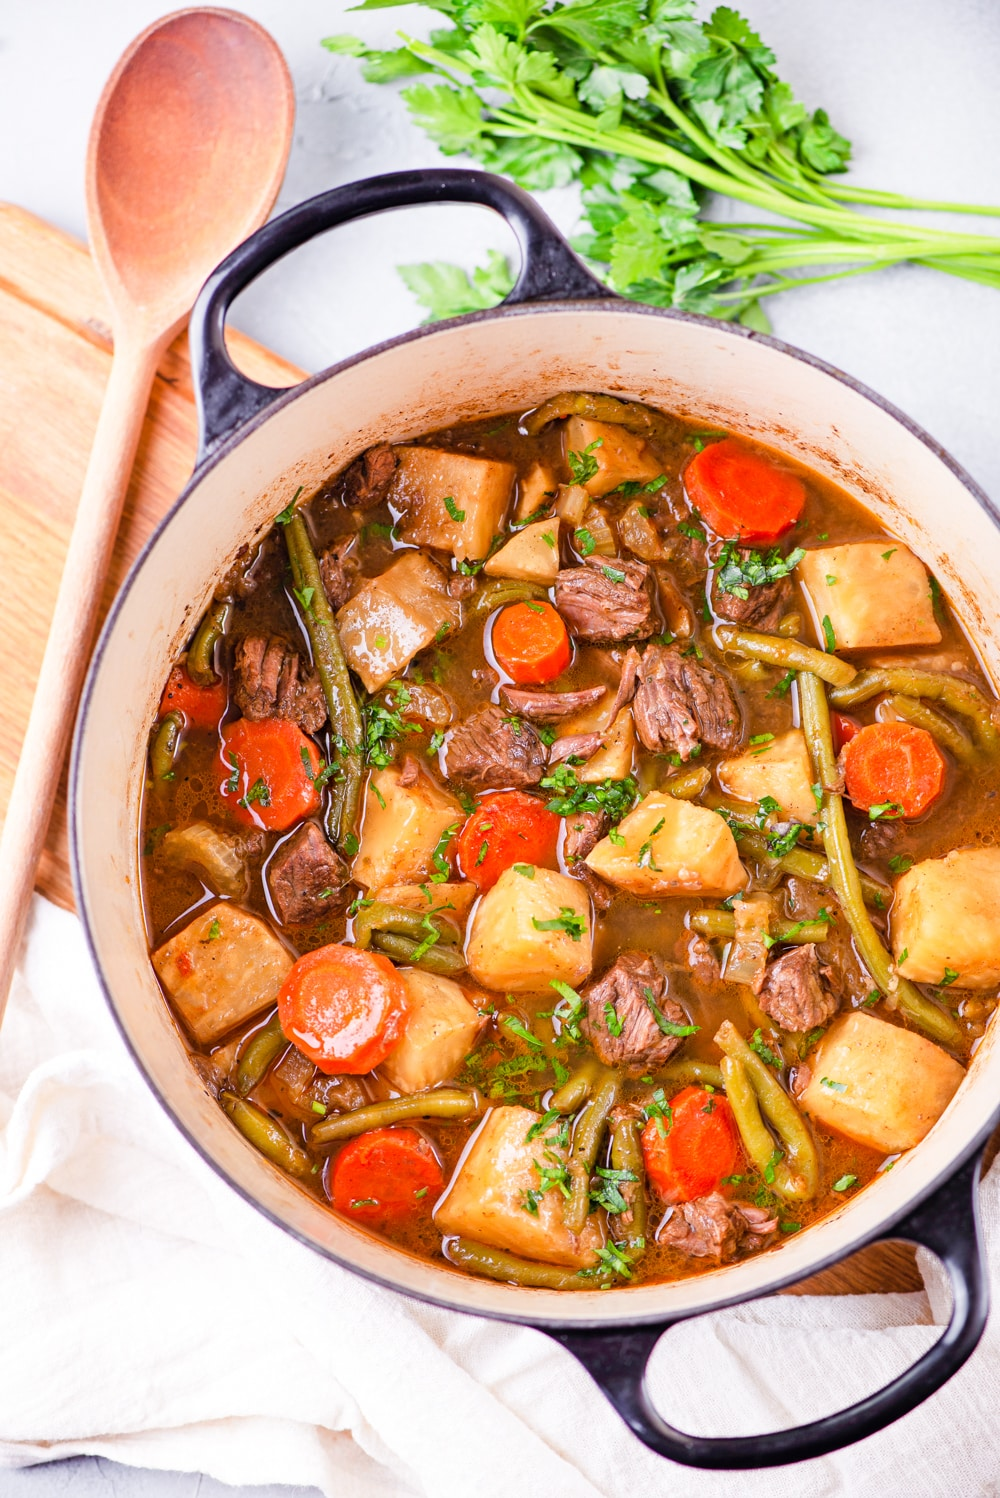 A pot with chunks of meat, carrots, and kohlrabi sitting in a broth, and topped with fresh herbs.